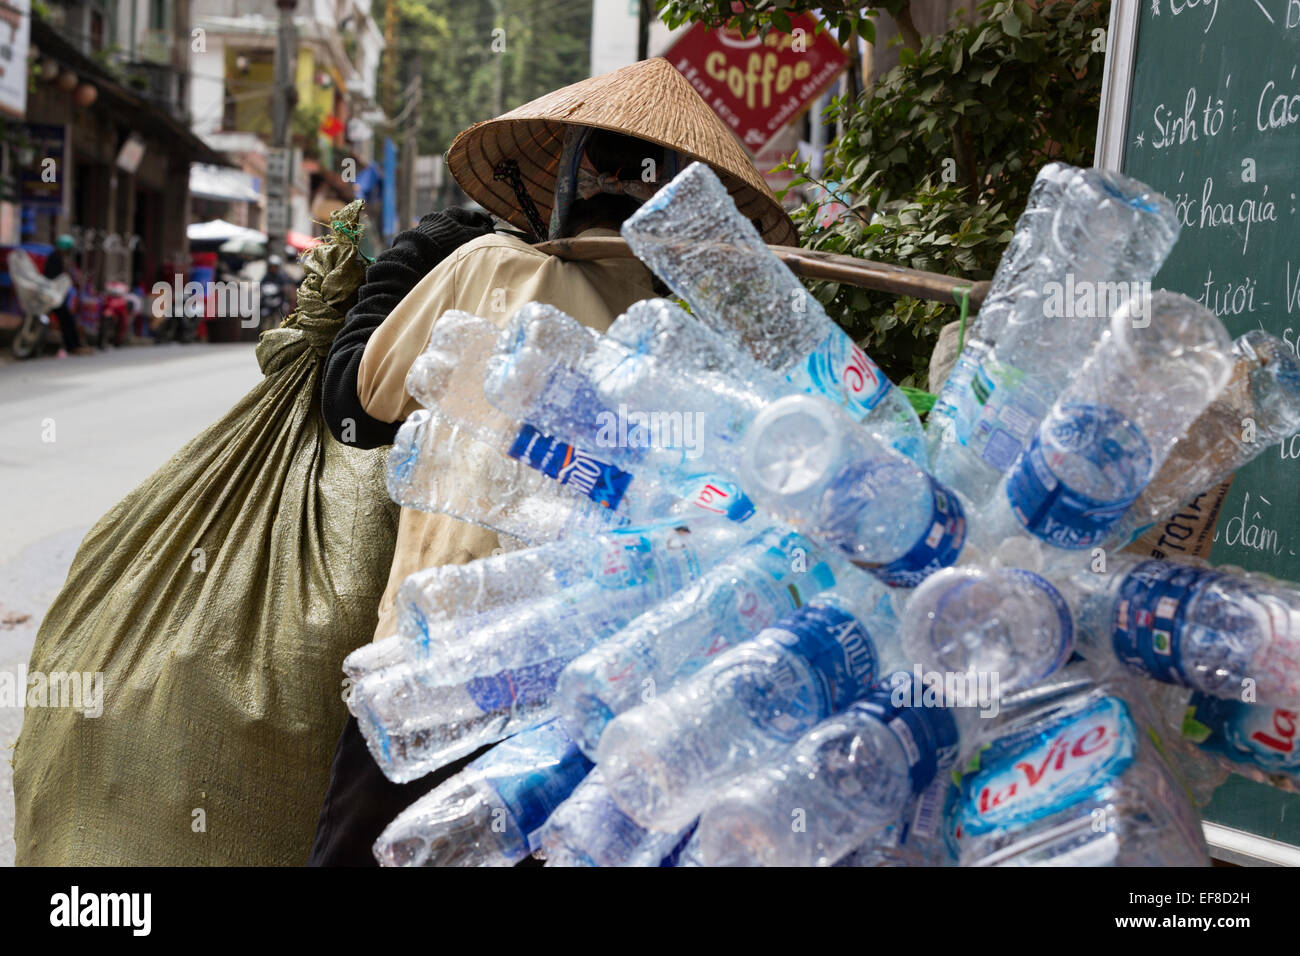 Woman carrying plastic bottles collected for recycling, Cau May street, Sapa, northern Vietnam - Stock Image